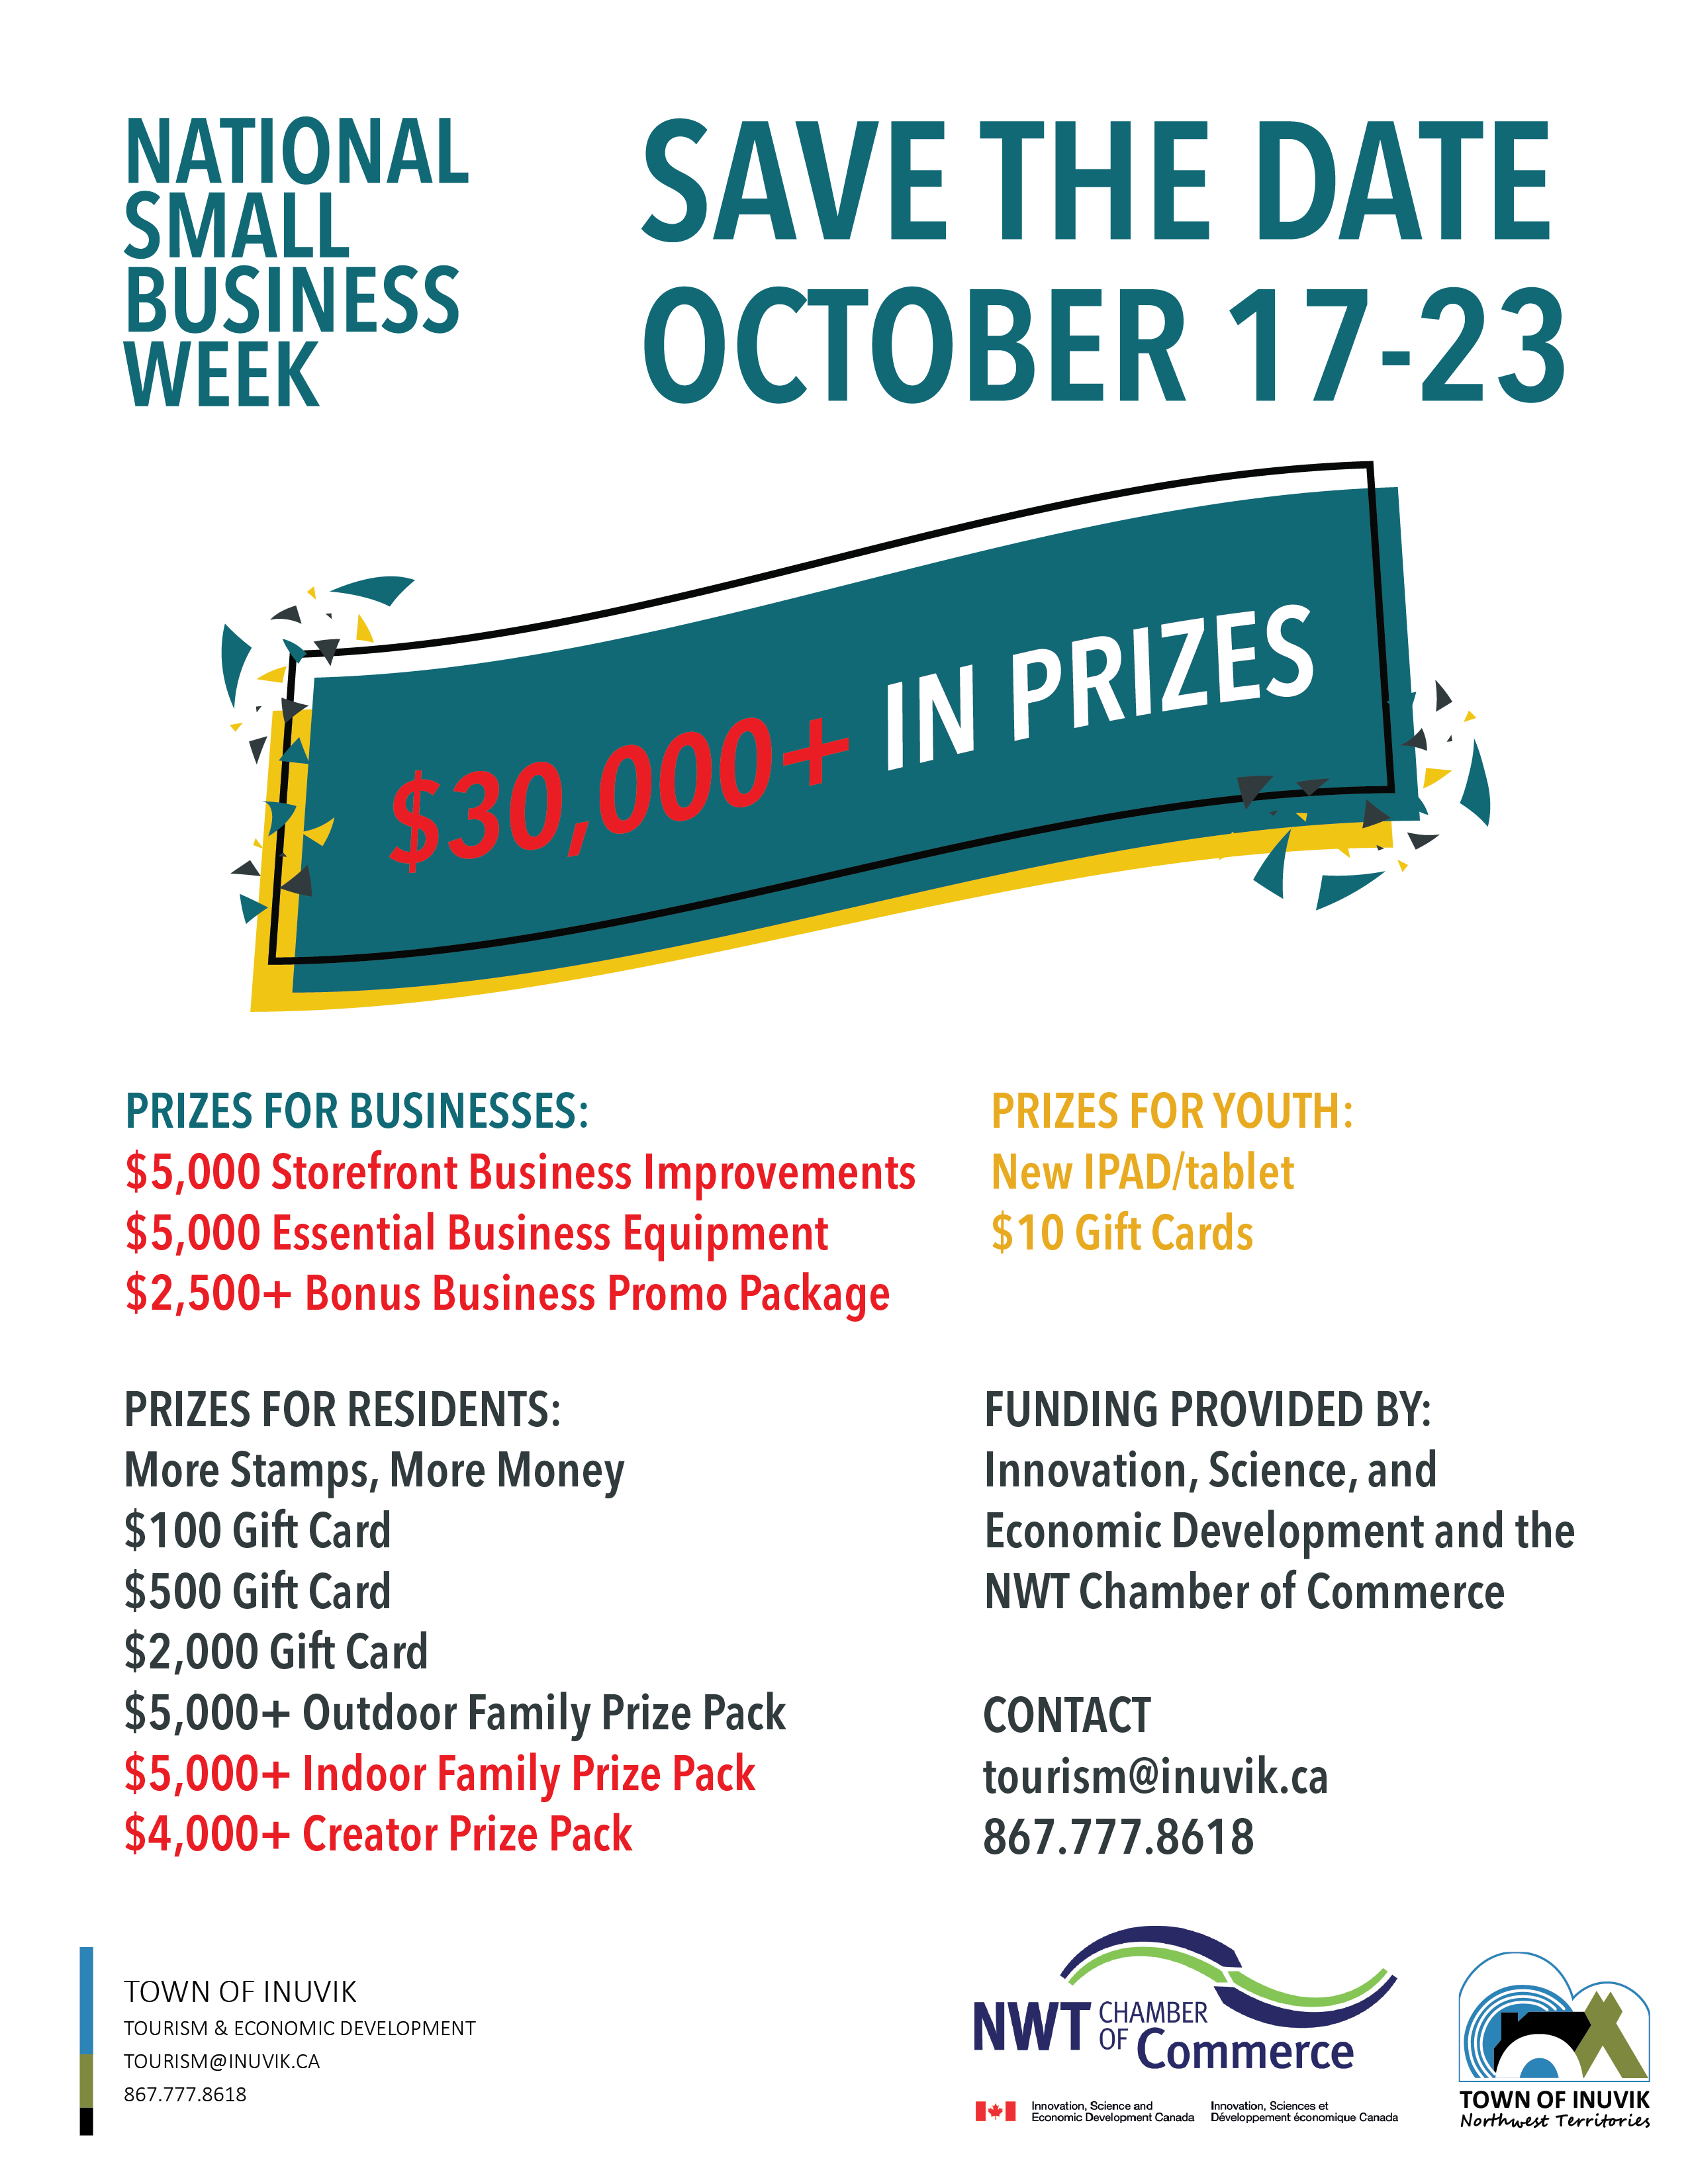 SMALL BUSINESS WEEK PRIZES